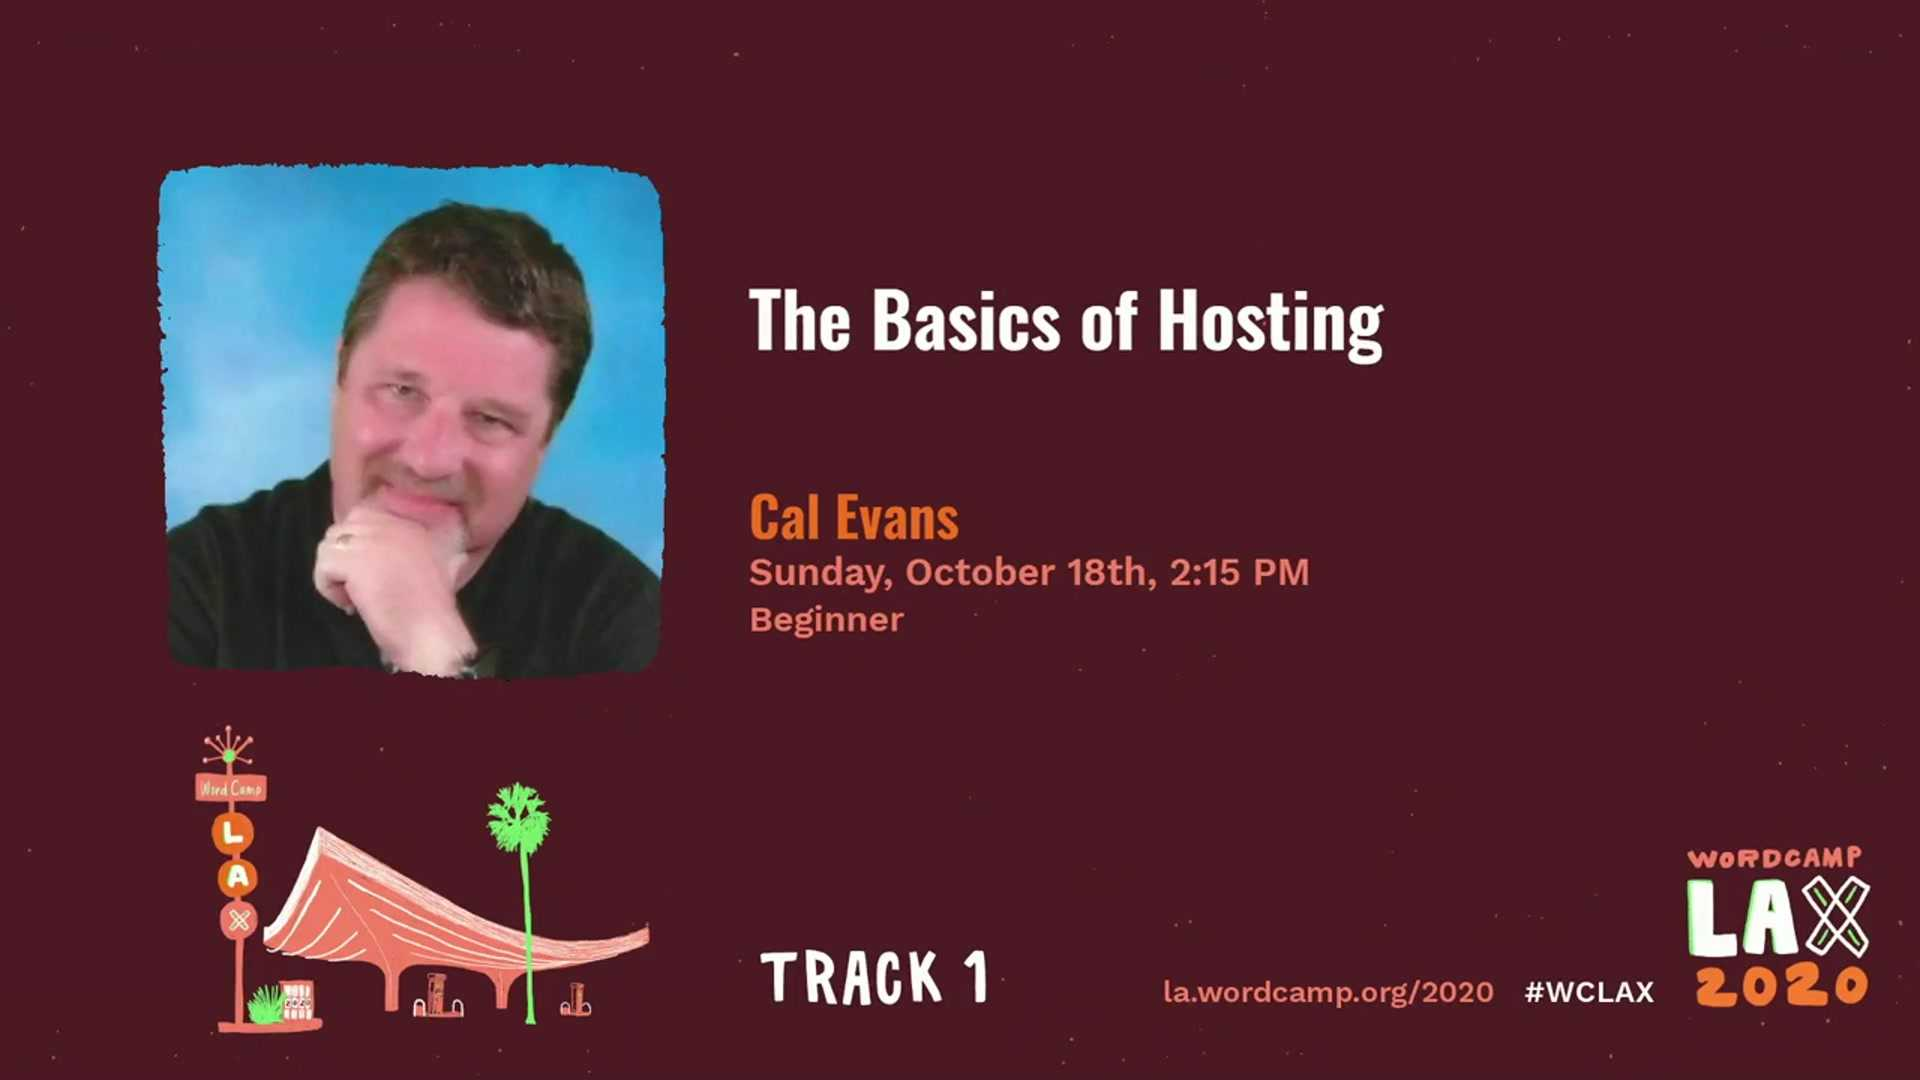 Cal Evans: The Basics of Hosting